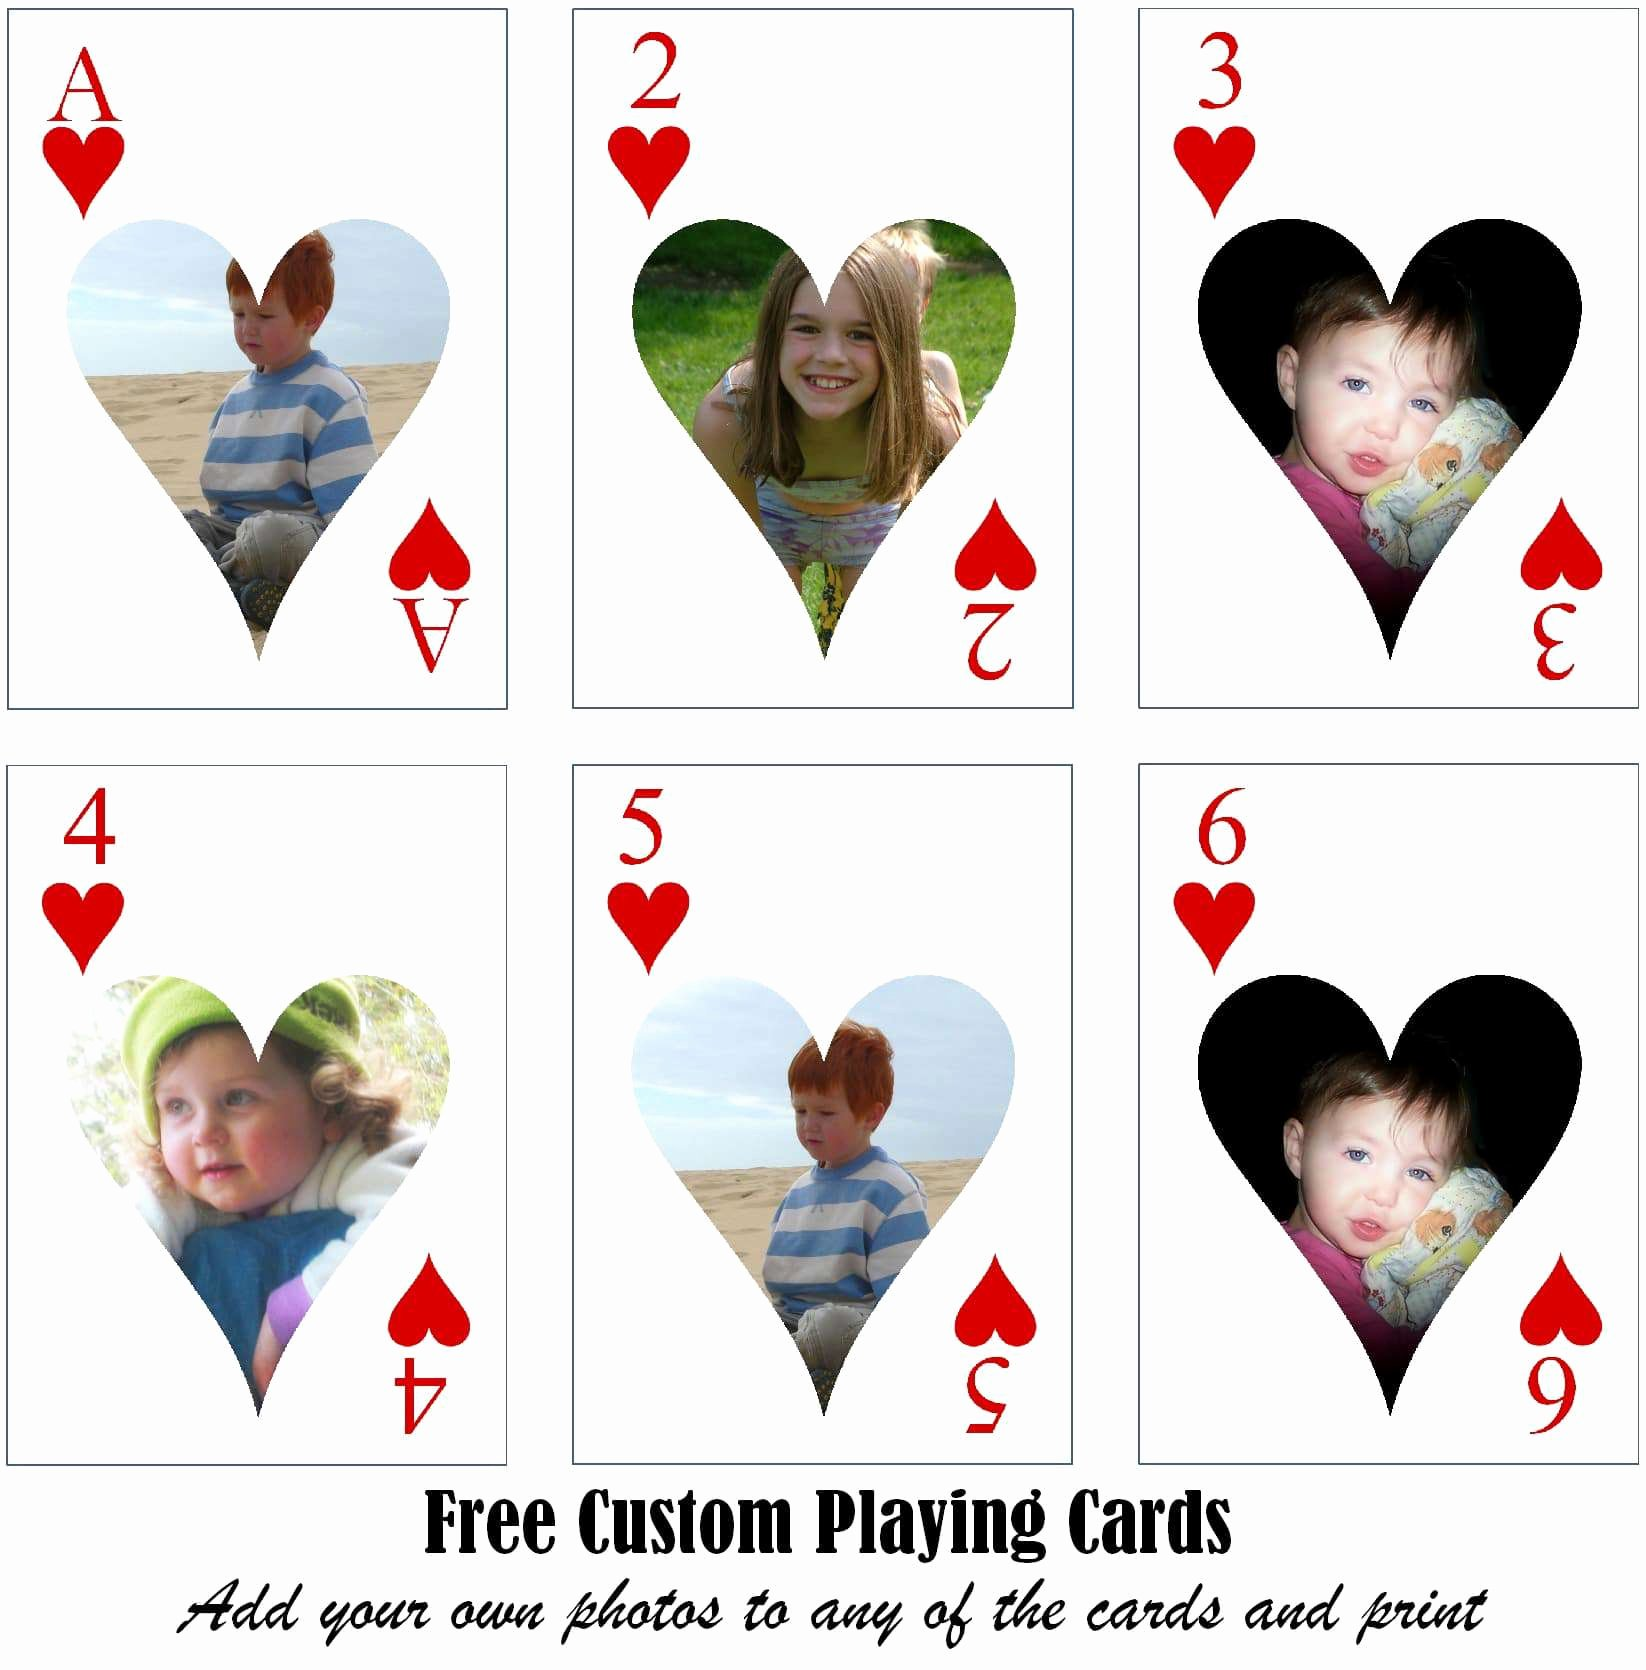 Custom Playing Card Template Elegant Free Printable Custom Playing Cards